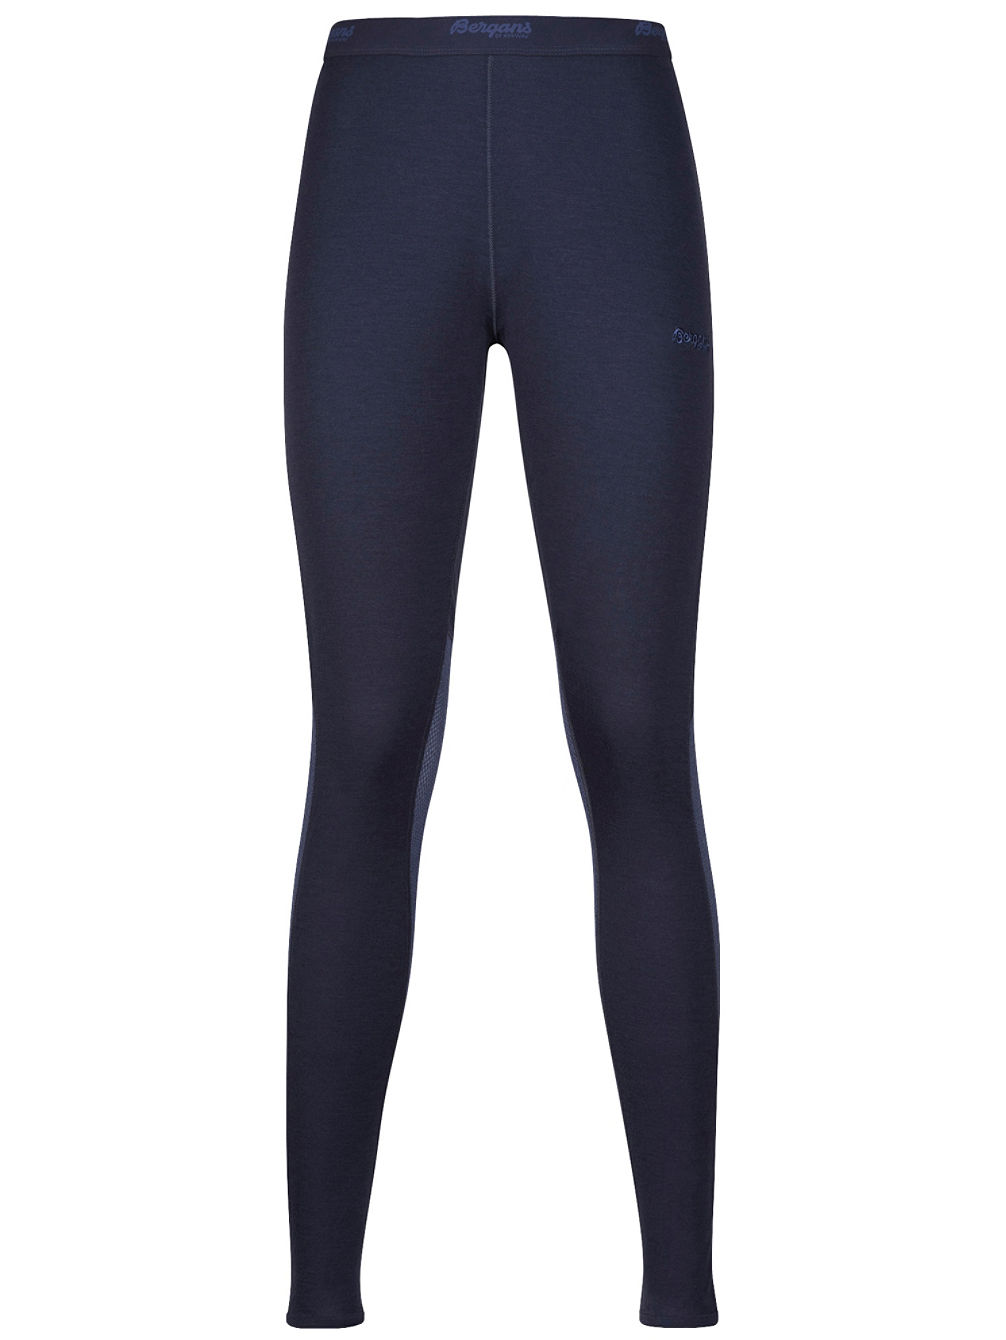 Barlind Tight Tech Pants